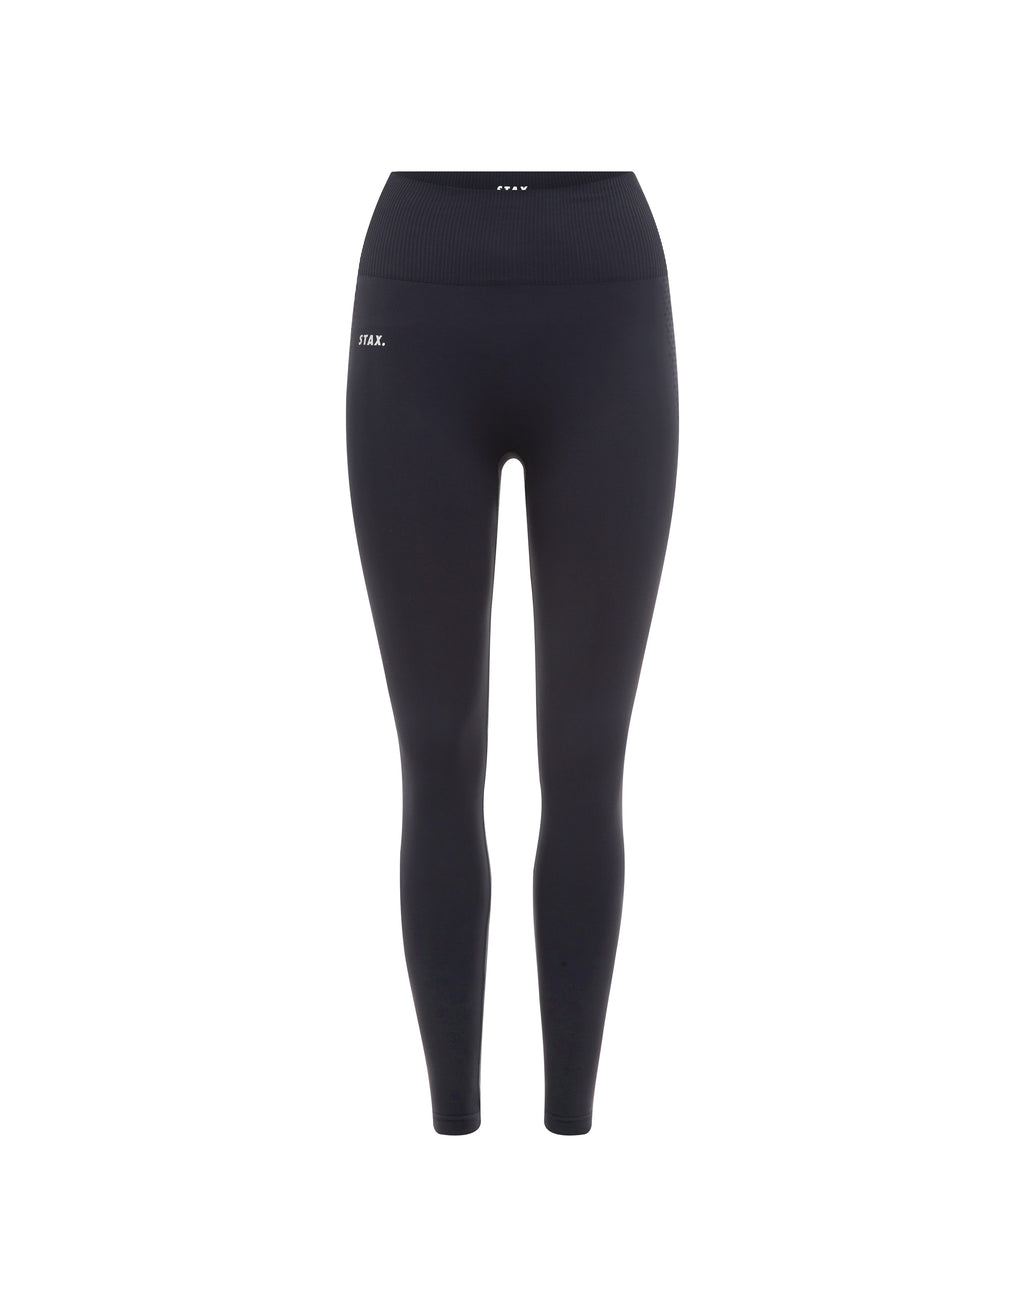 STAX. Tote Bag - Sunflower (Yellow)